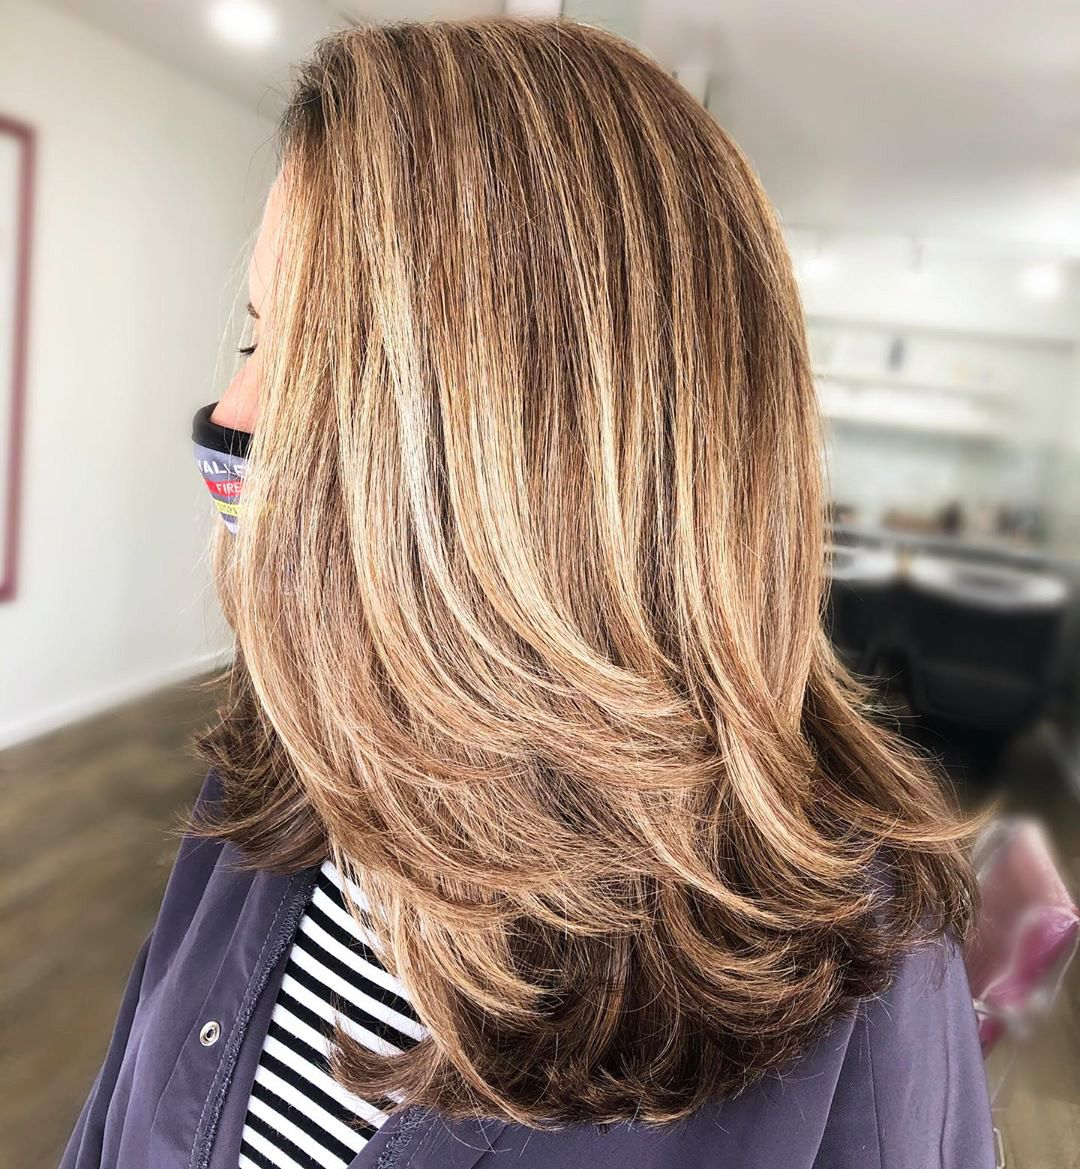 36 Best Long Multi Layered Hairstyles Pictures In 2020 Long Hair Styles Hair Styles Layered Haircuts